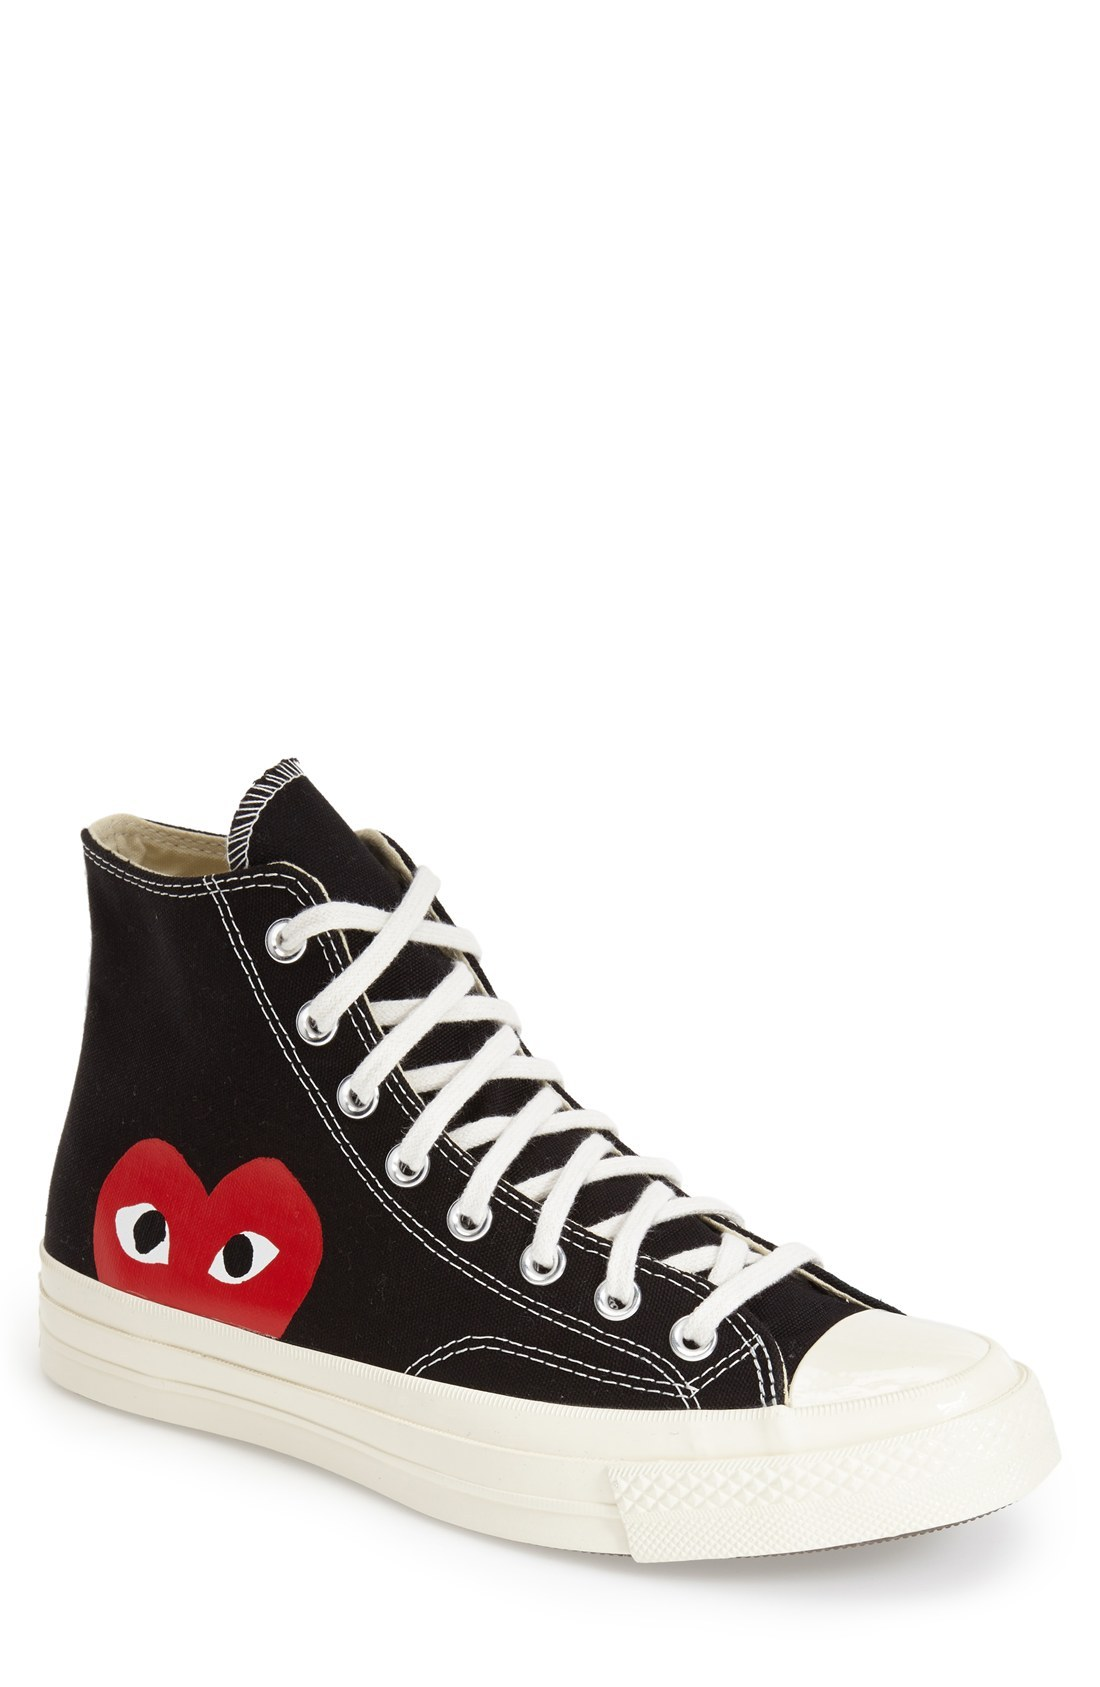 c9845dc9b589d Comme Des Garcons Converse   Buy Discount Shoes from Asics and ...